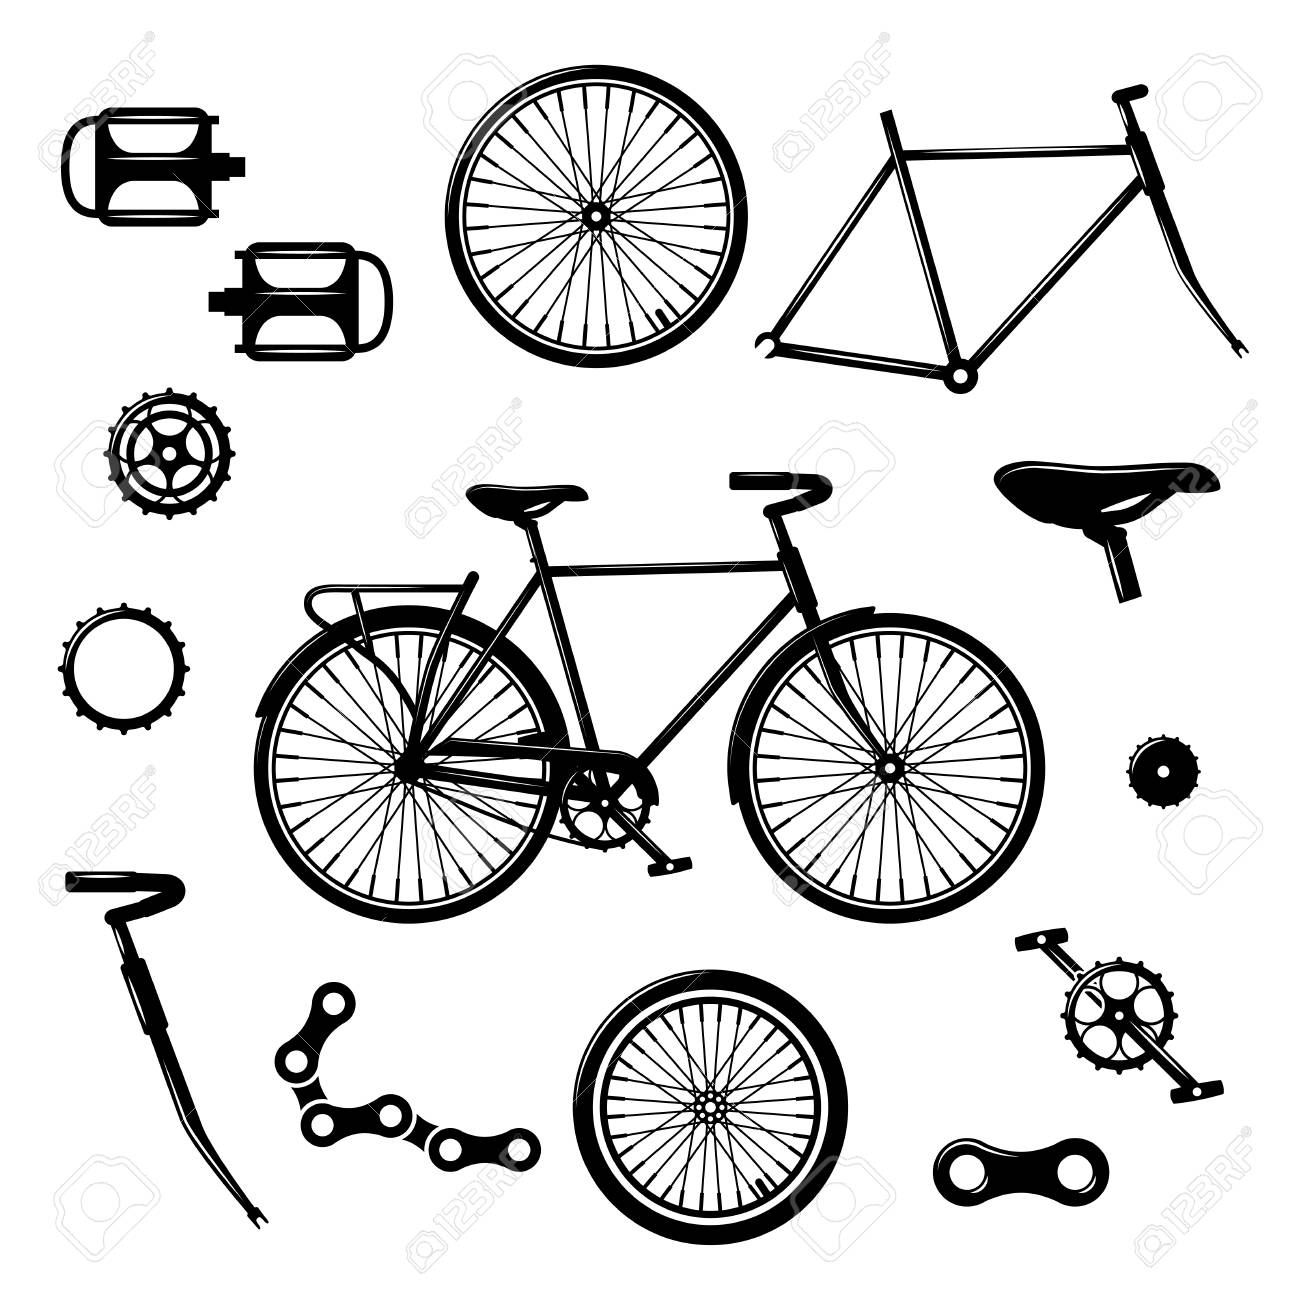 Bike parts  Bicycle equipment and components isolated vector